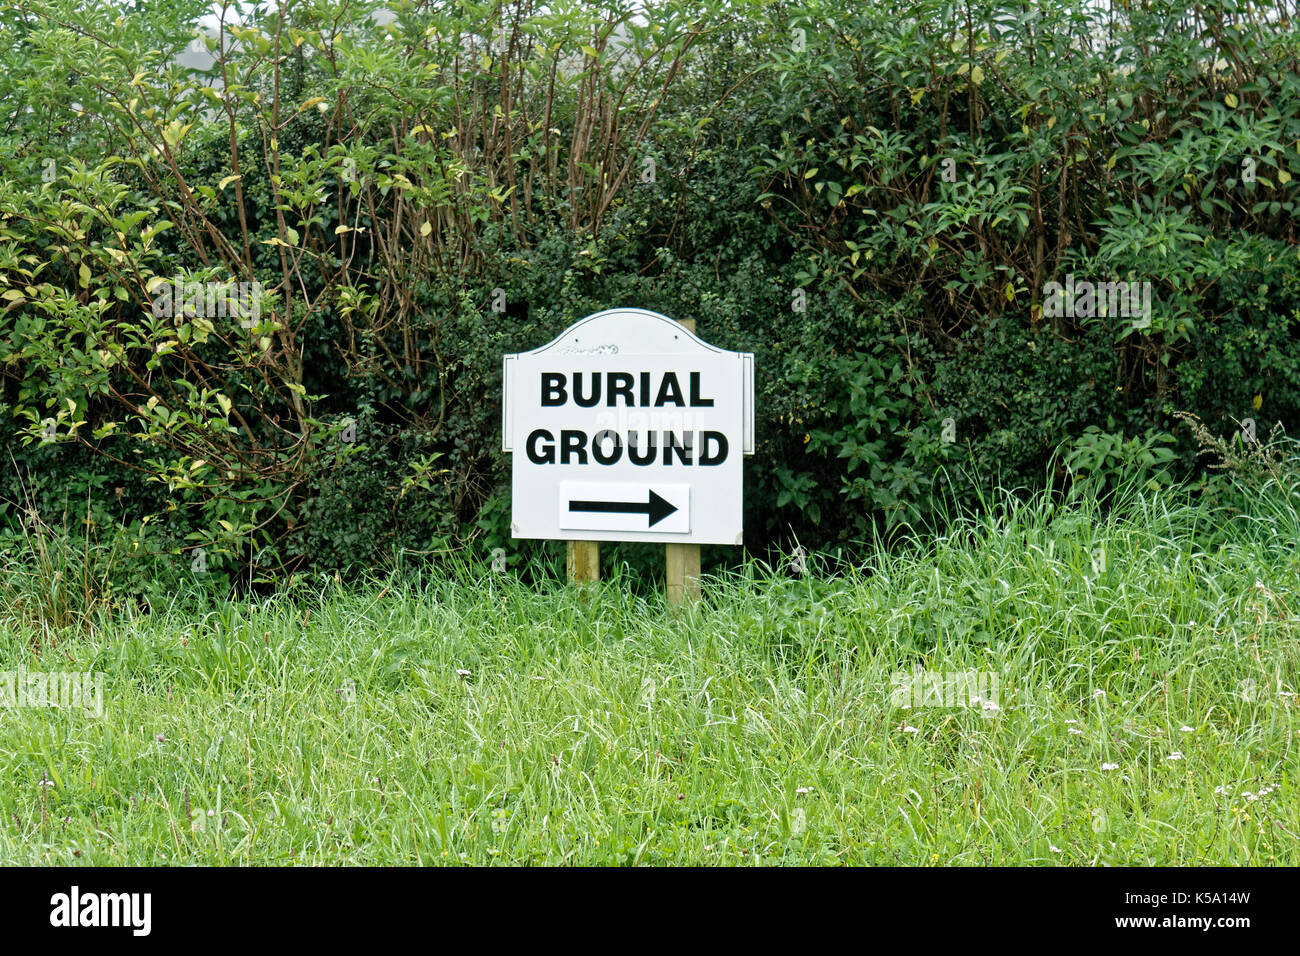 Burial ground sign in hedgerow. - Stock Image